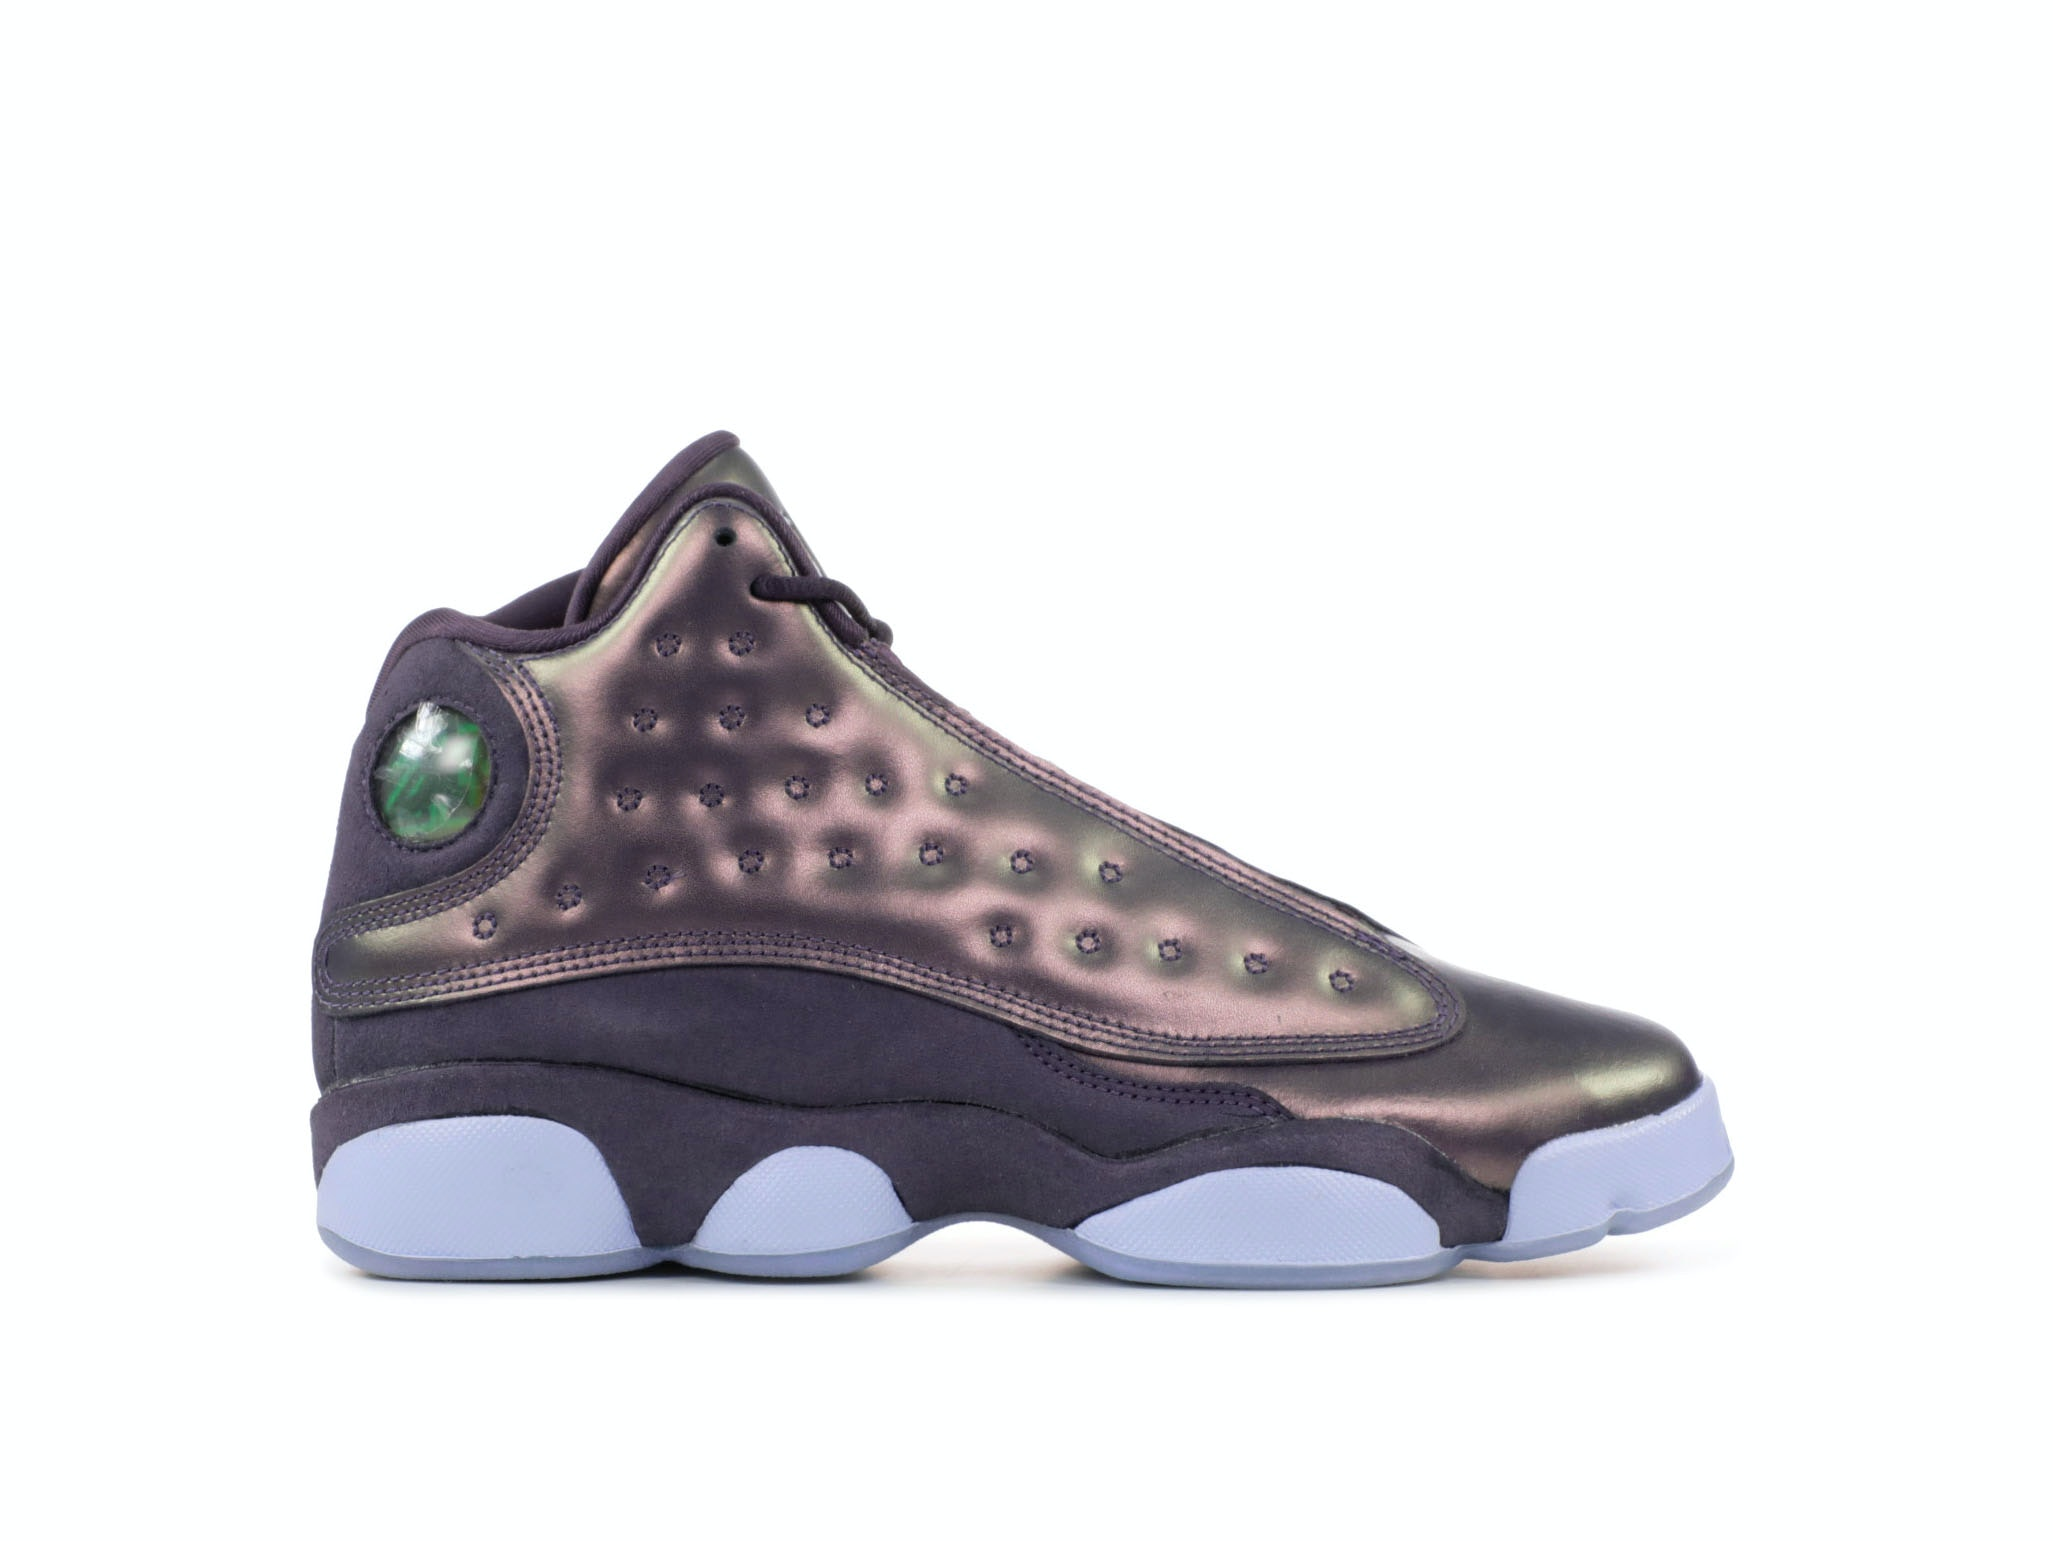 1cd2dbc78f201a Shop Air Jordan 13 Retro Premium HC GS Dark Raisin Online